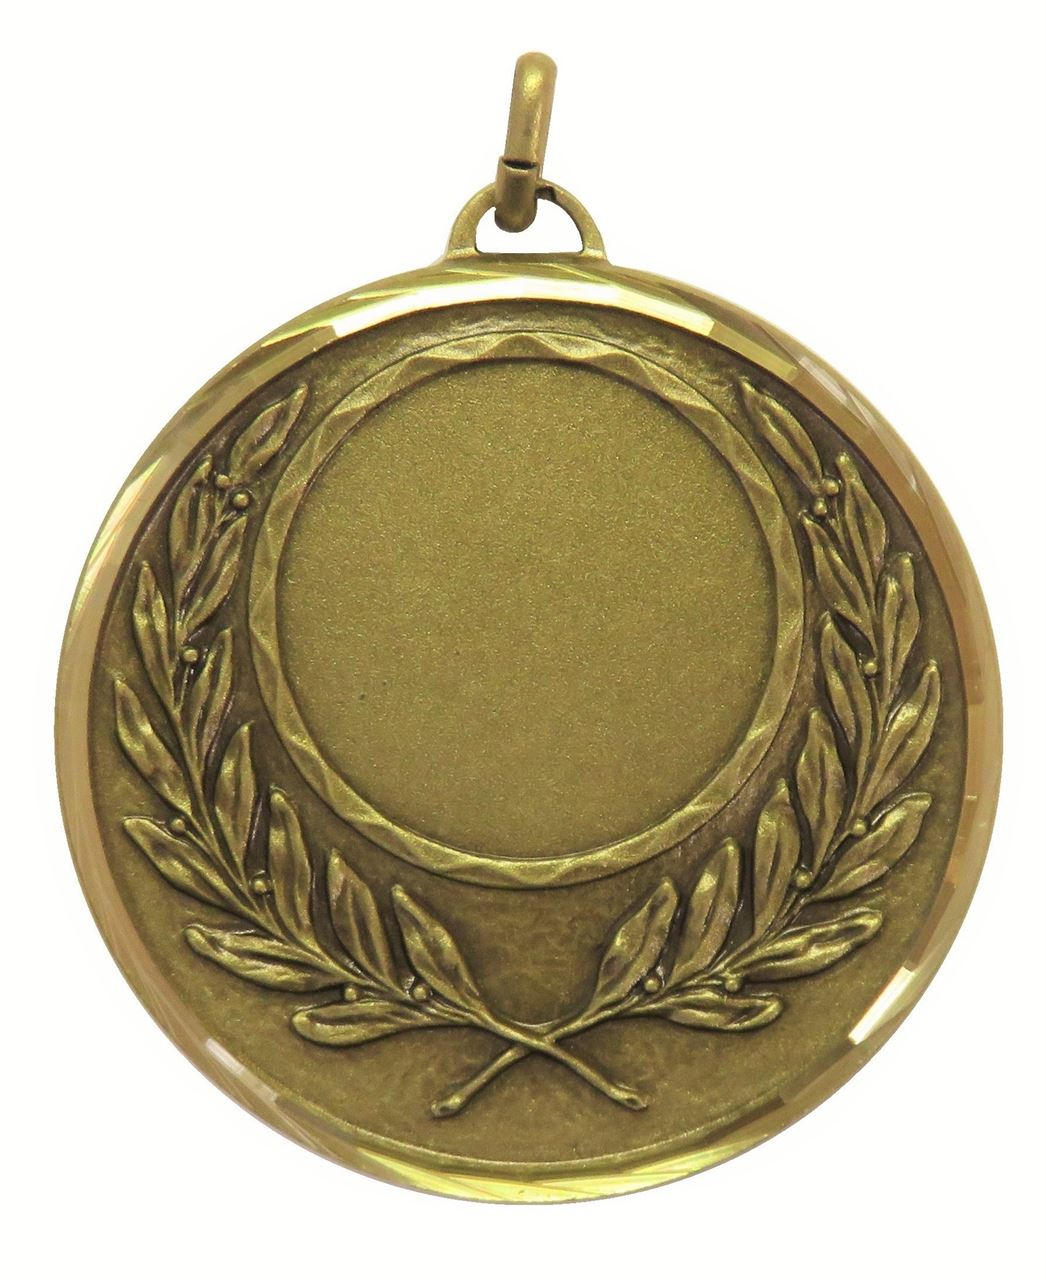 Bronze Faceted Wreath Medal (size: 50mm) - 5605F